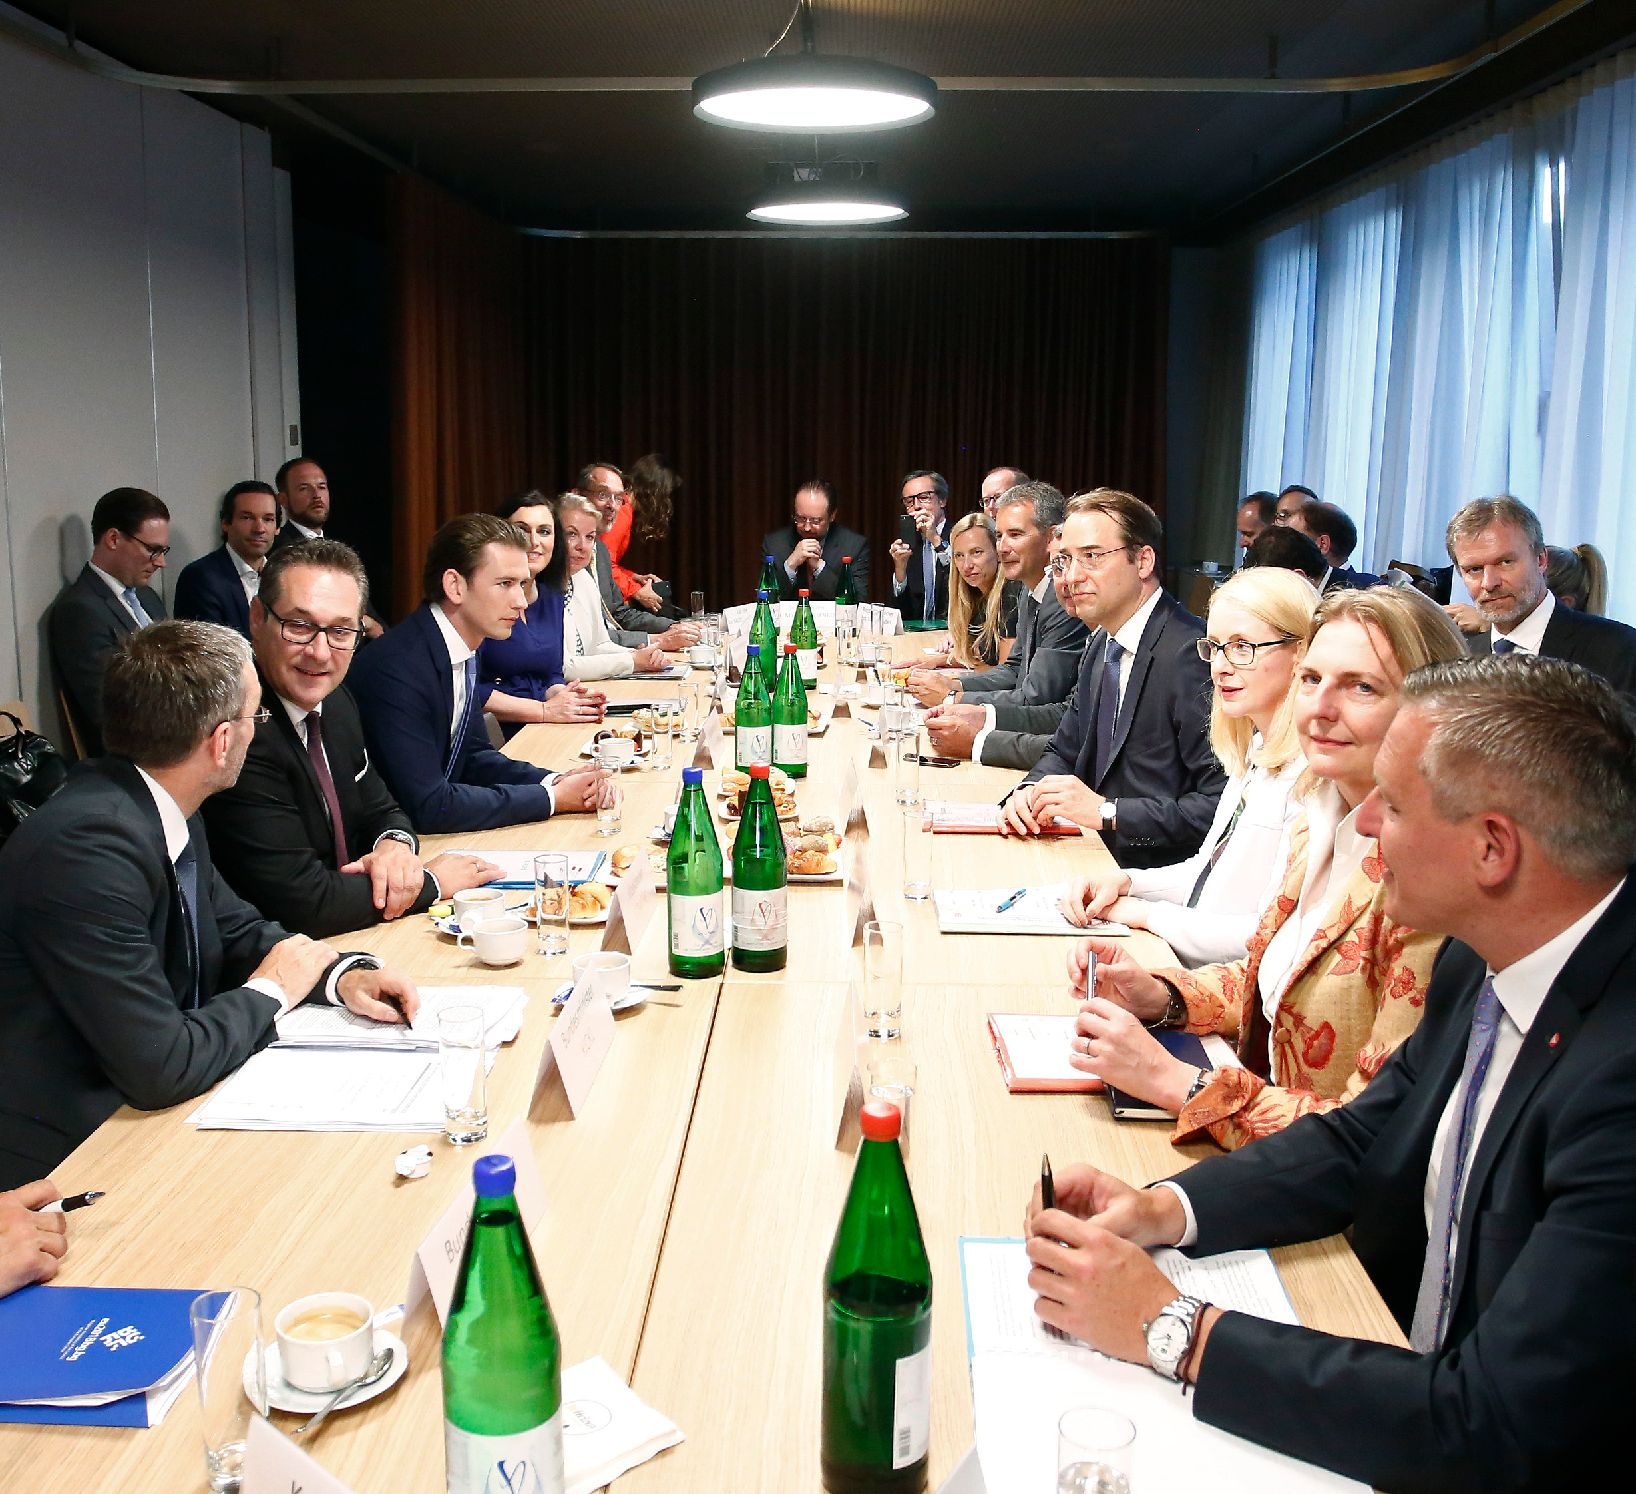 Meeting of the Austrian Council of Ministers in Brussels